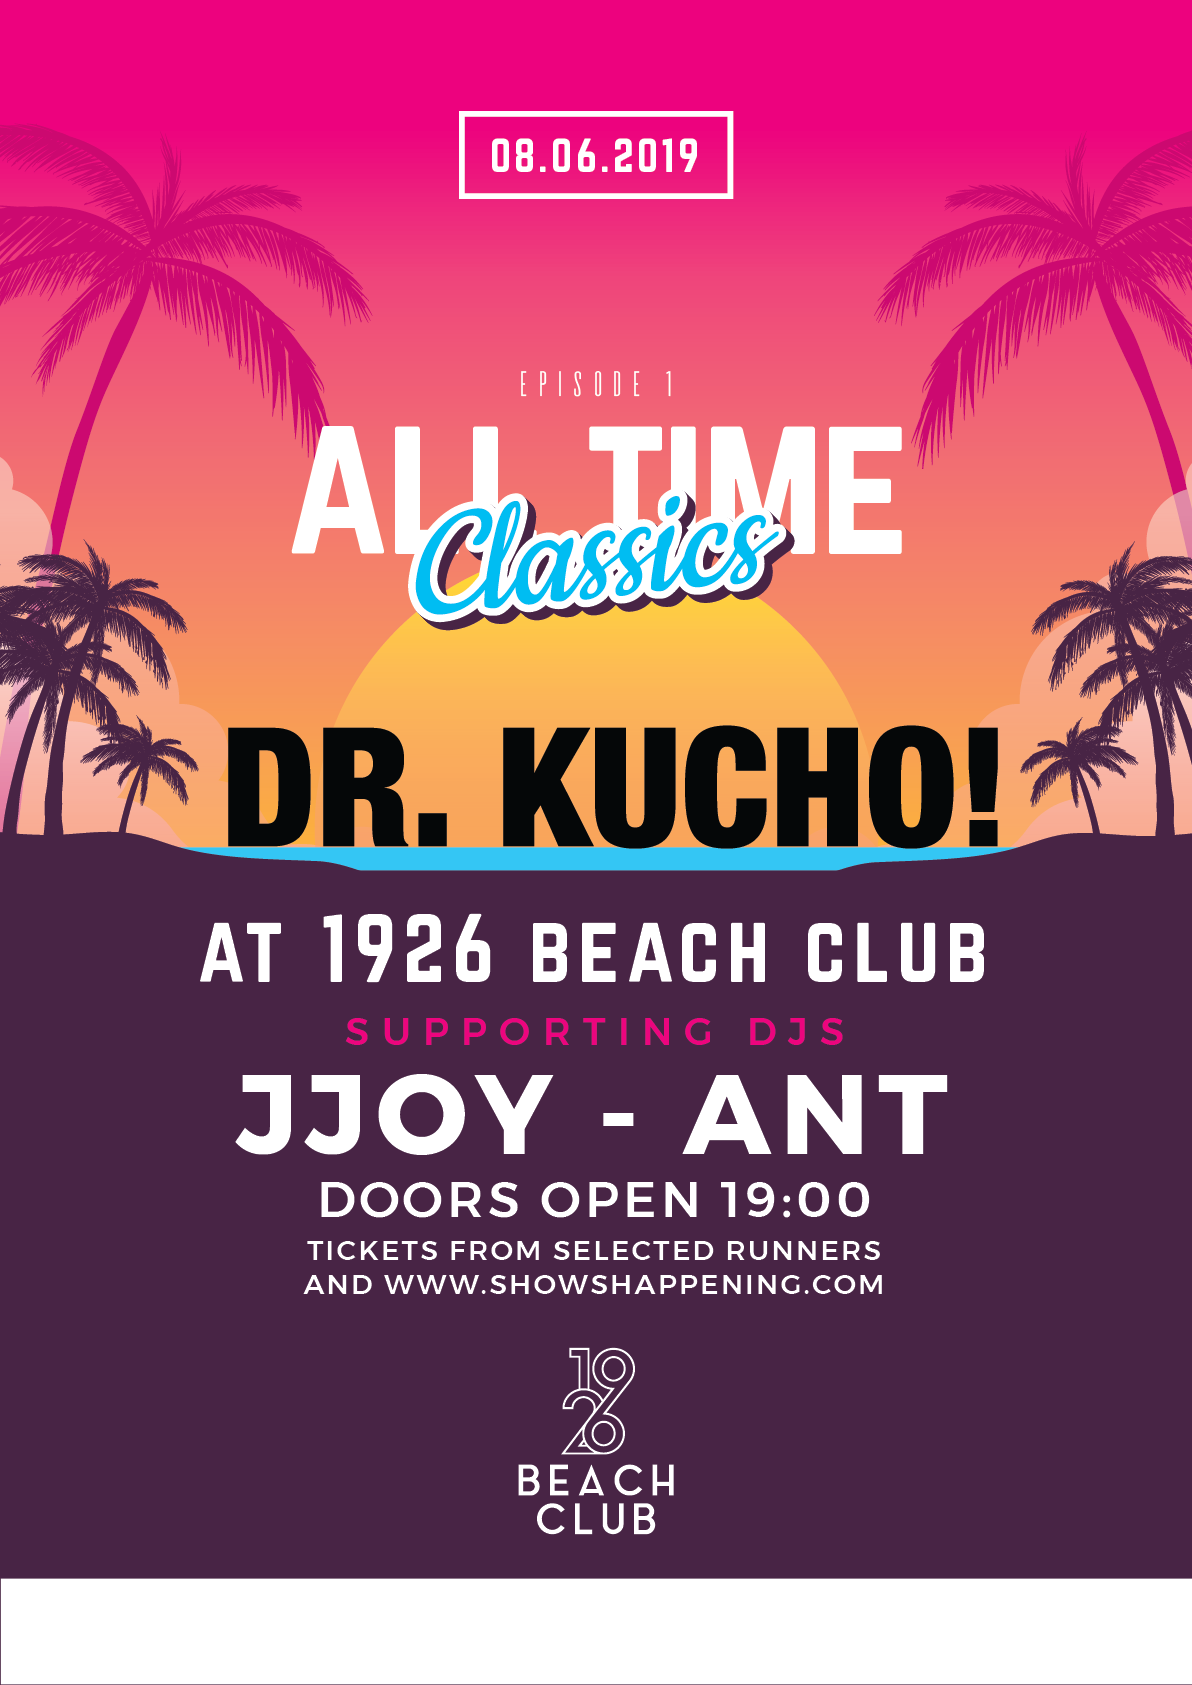 All Time Classics ft DR.KUCHO flyer